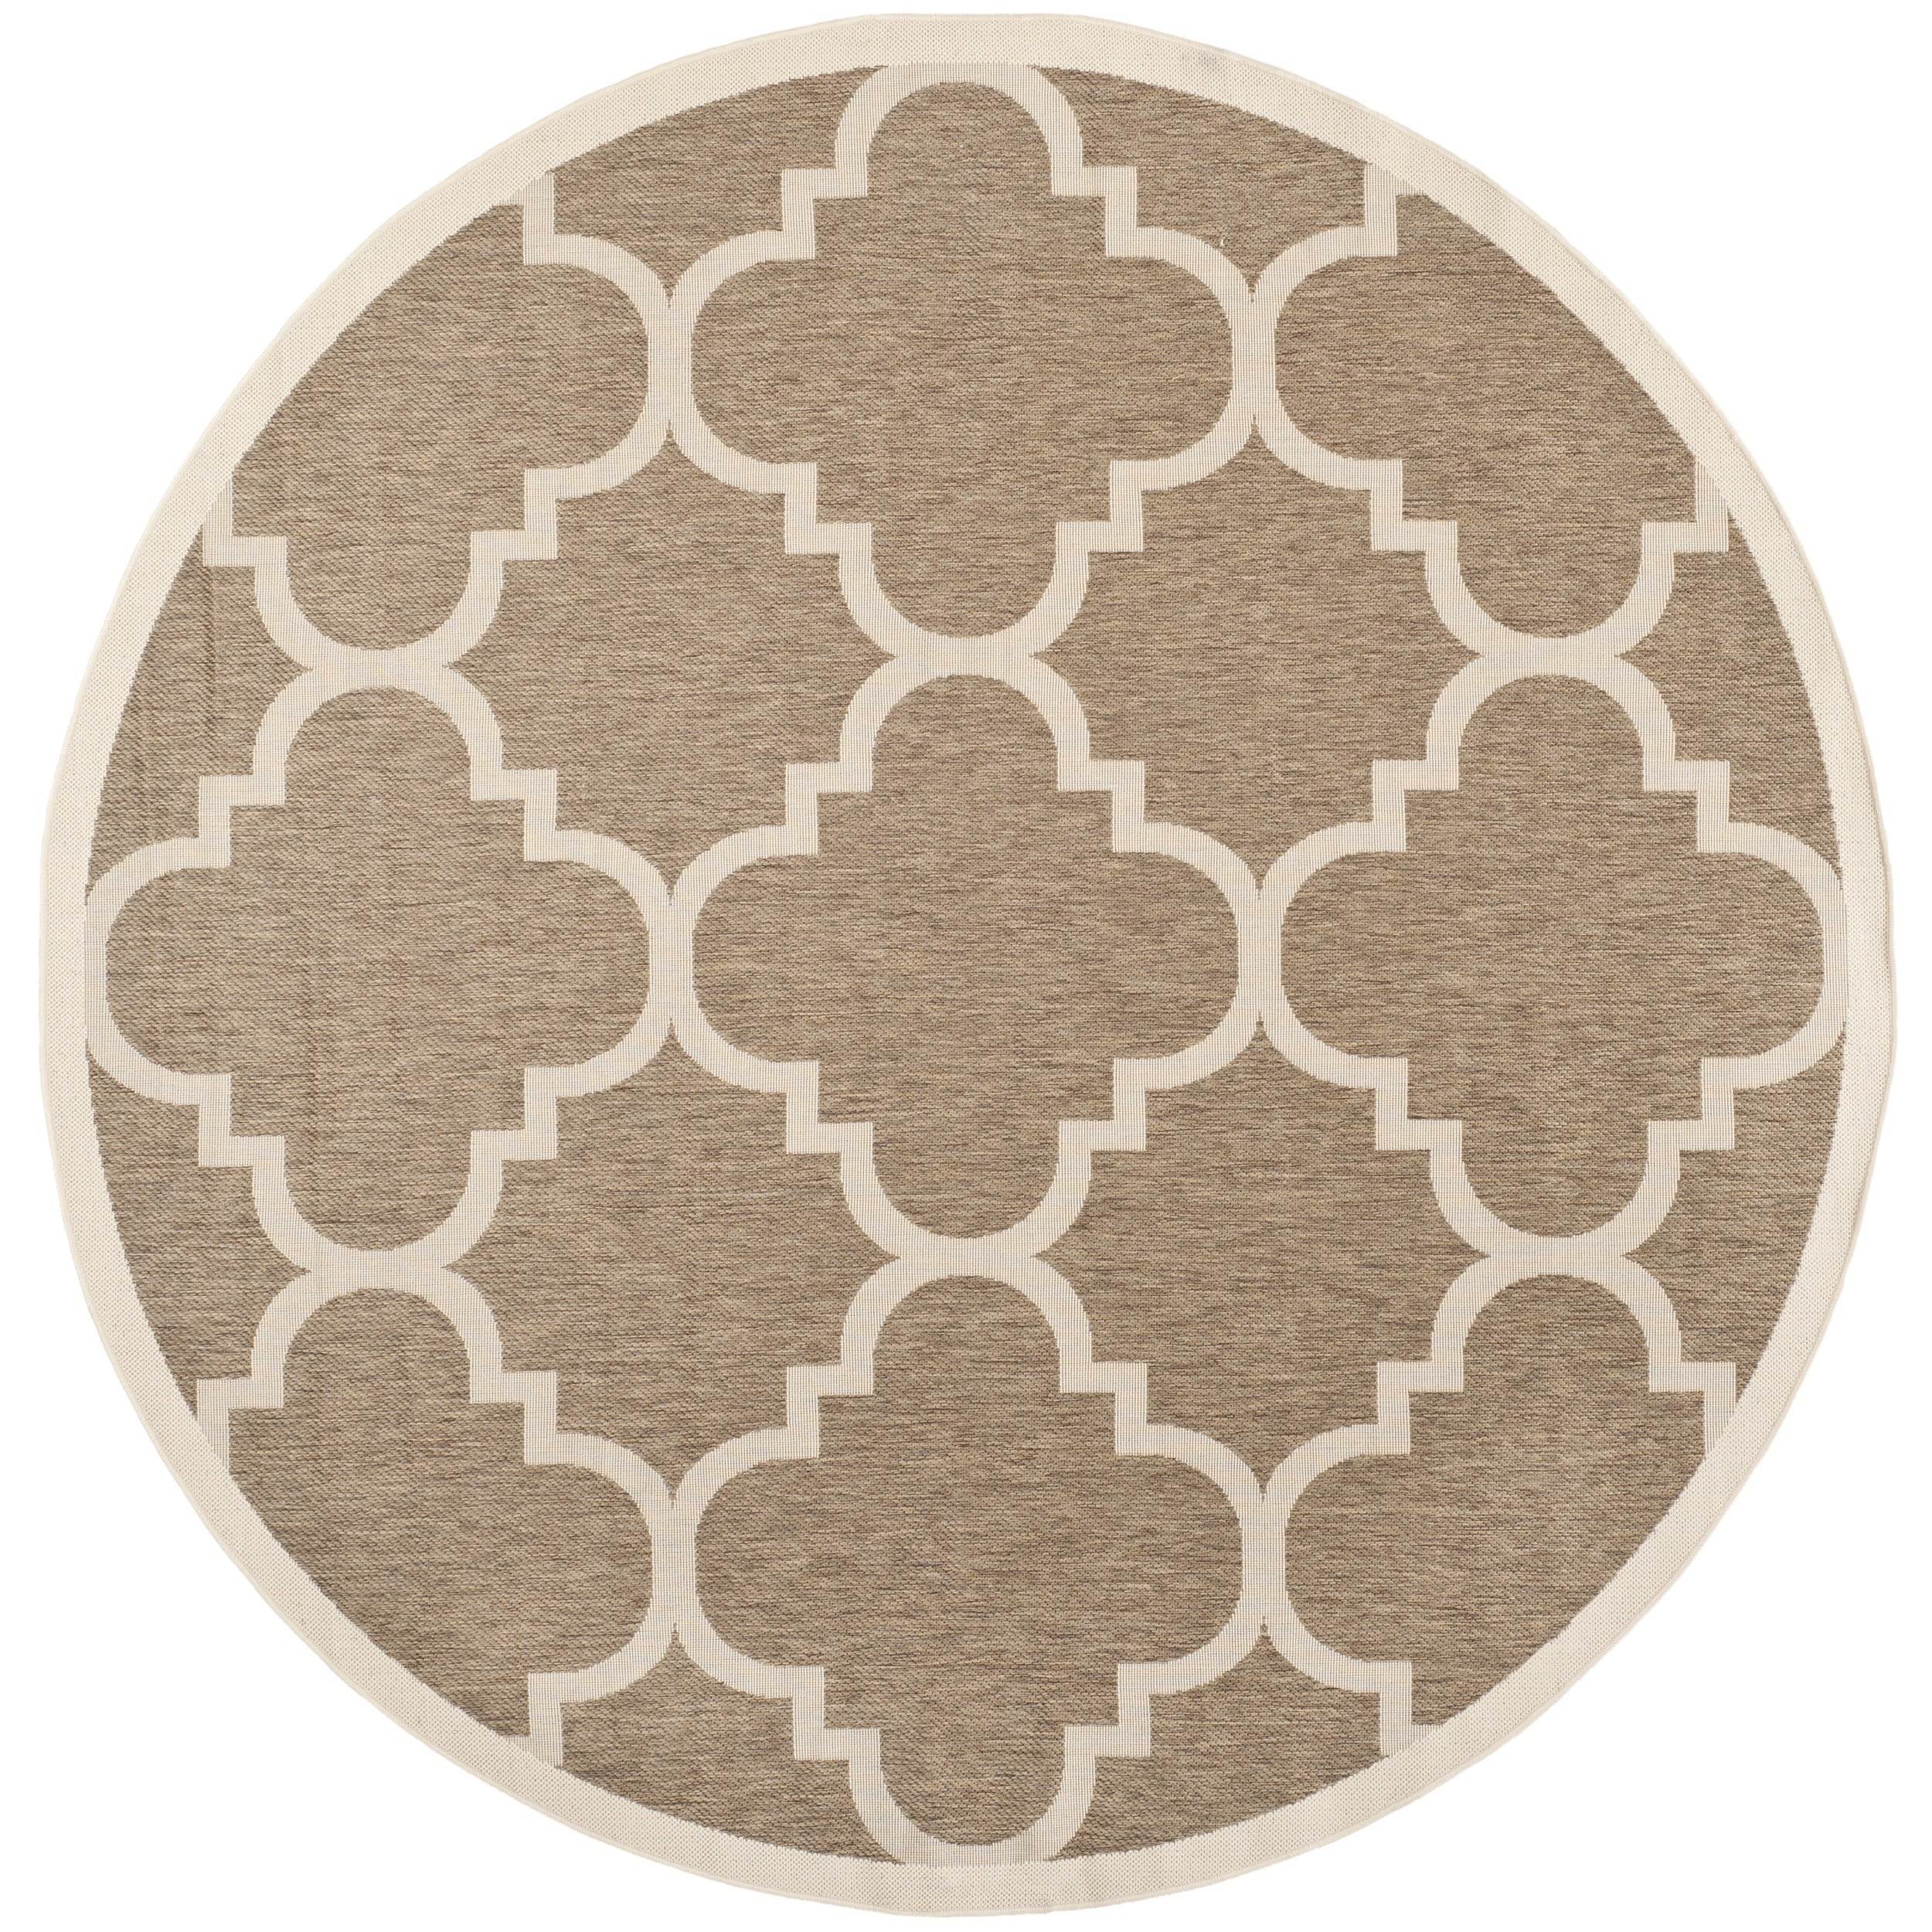 Safavieh Indoor/ Outdoor Courtyard Brown Rug (710 Round)